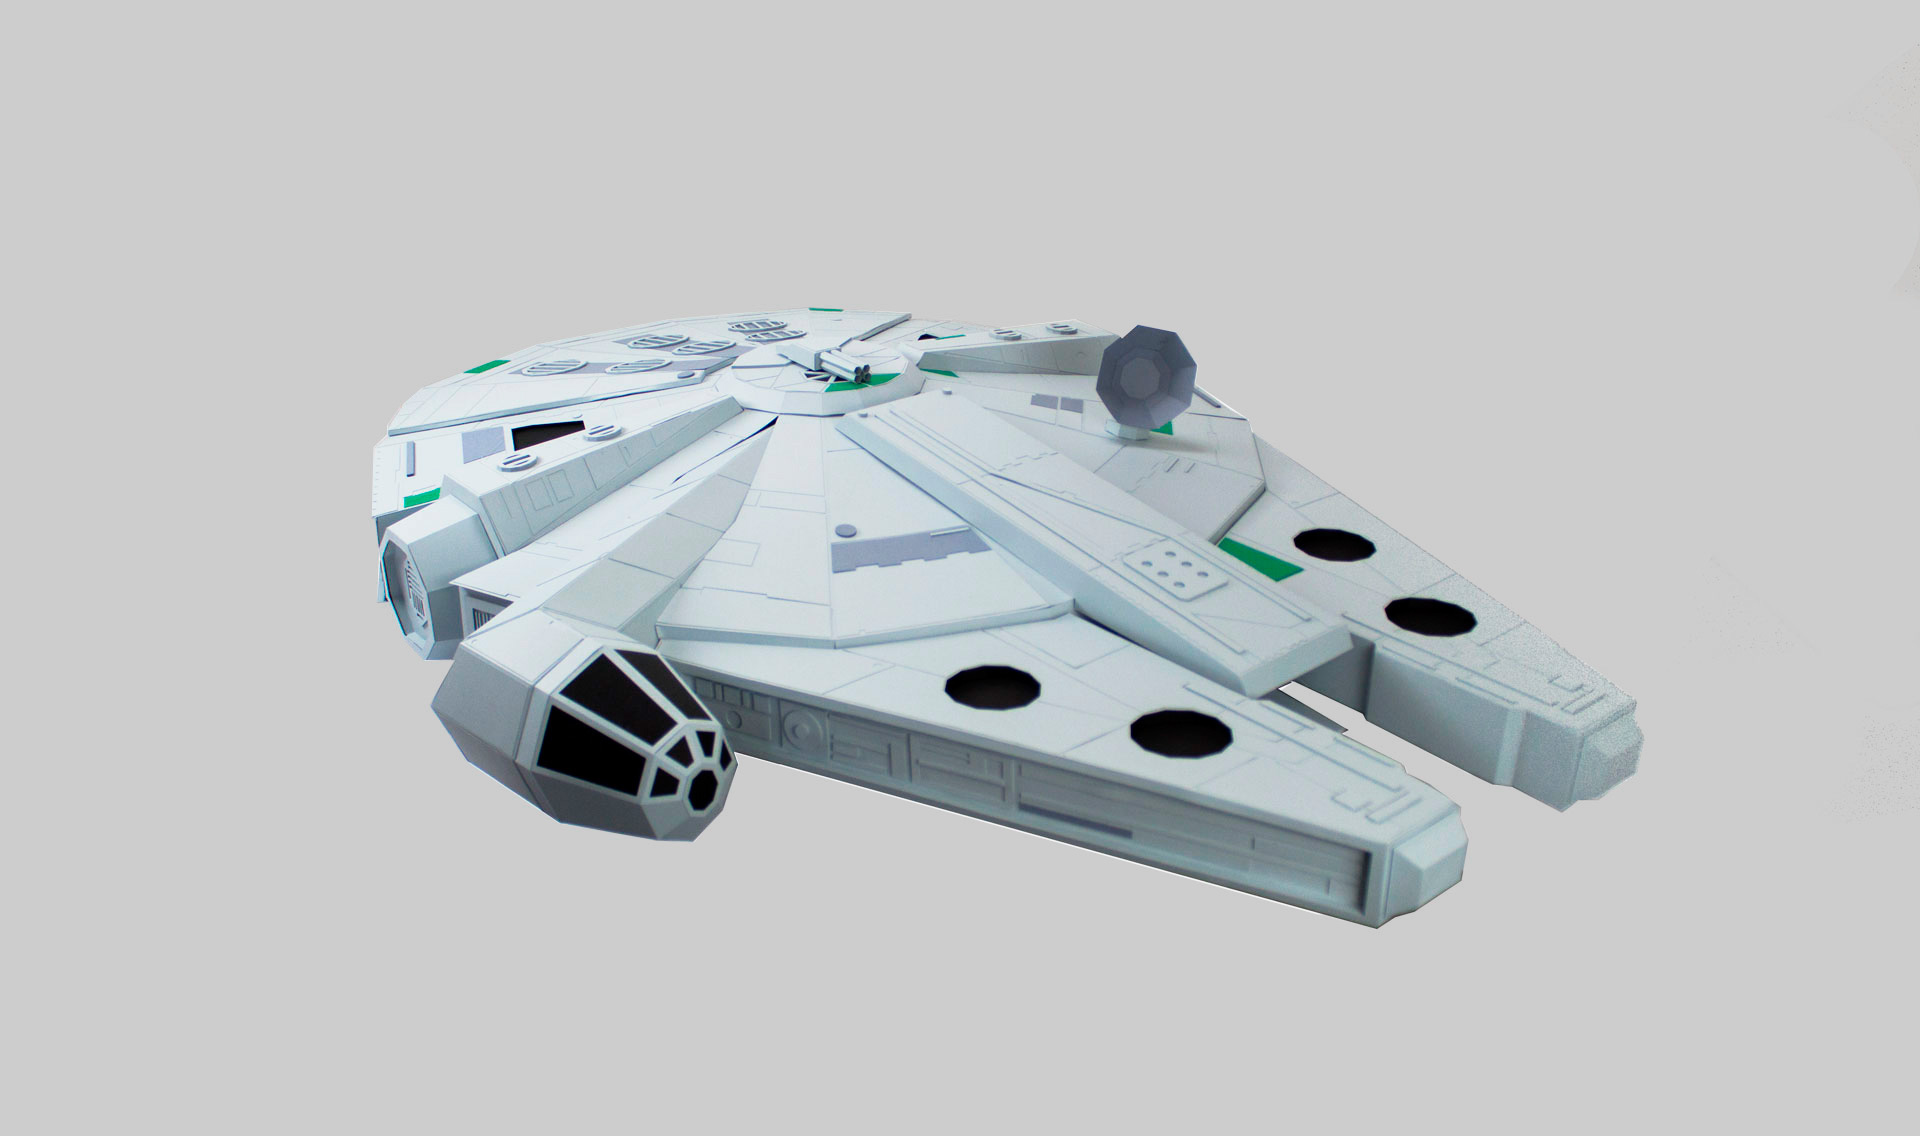 The Paper Strikes Back, Paper Craft Millennium Falcon by Oupas Design